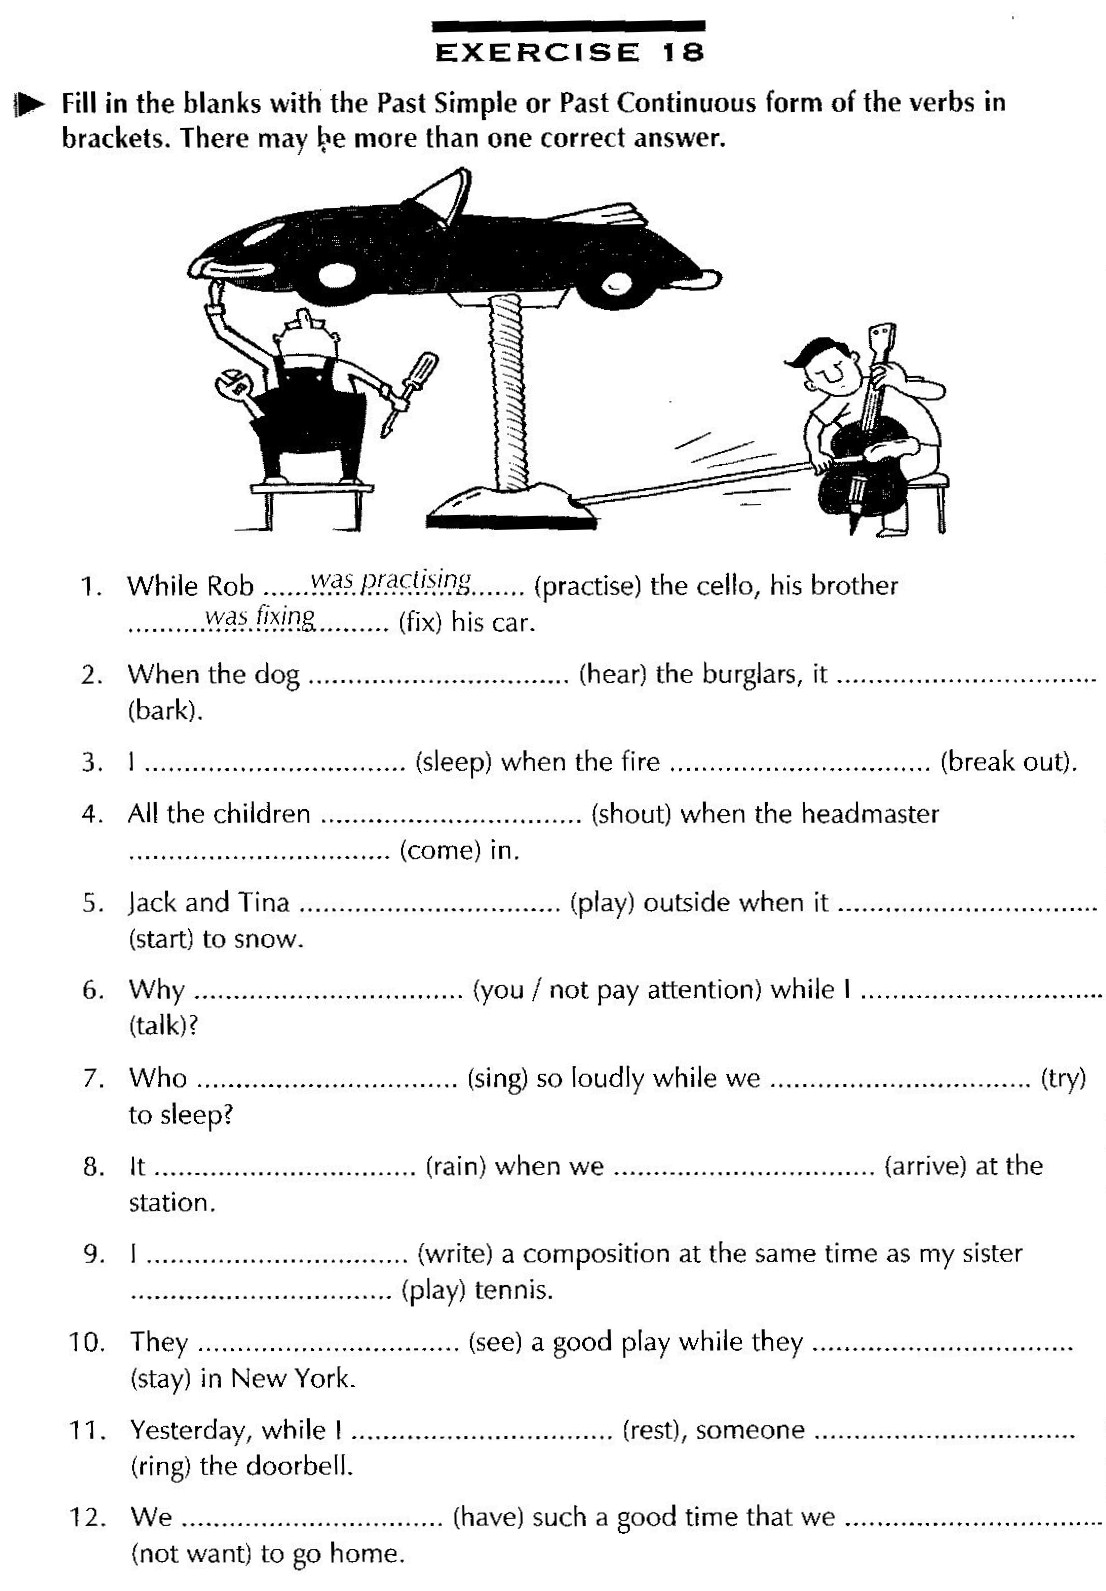 worksheet Spanish Practice Worksheets spanish worksheets for middle school abitlikethis tense exercises moreover future practice worksheets